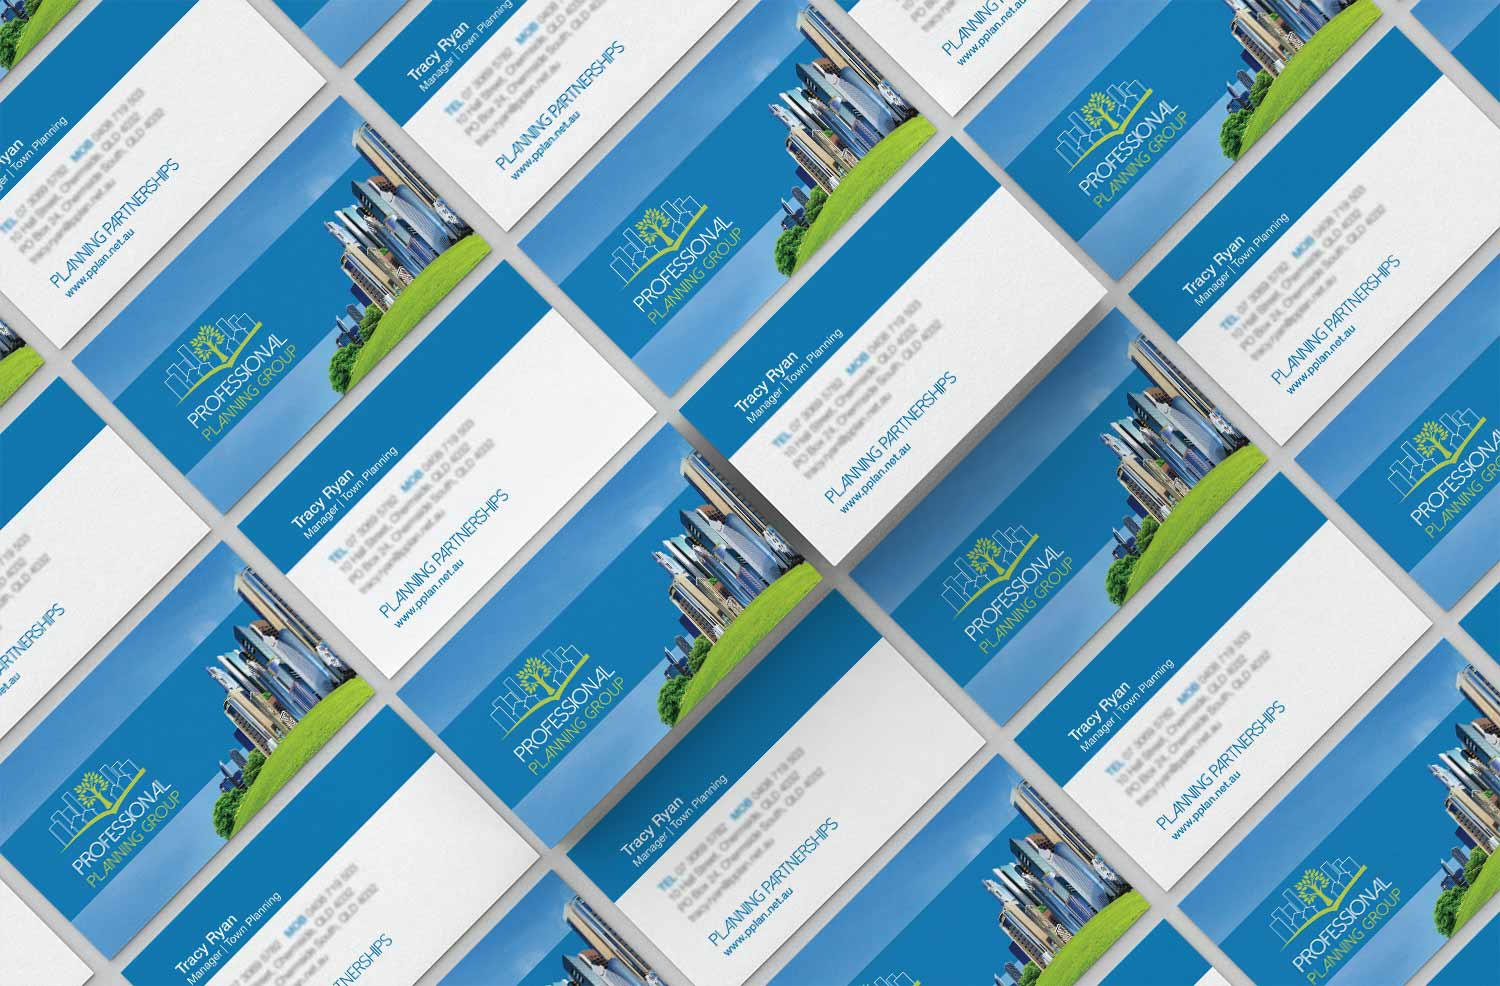 professional business cards designed by graphic designer brisbane